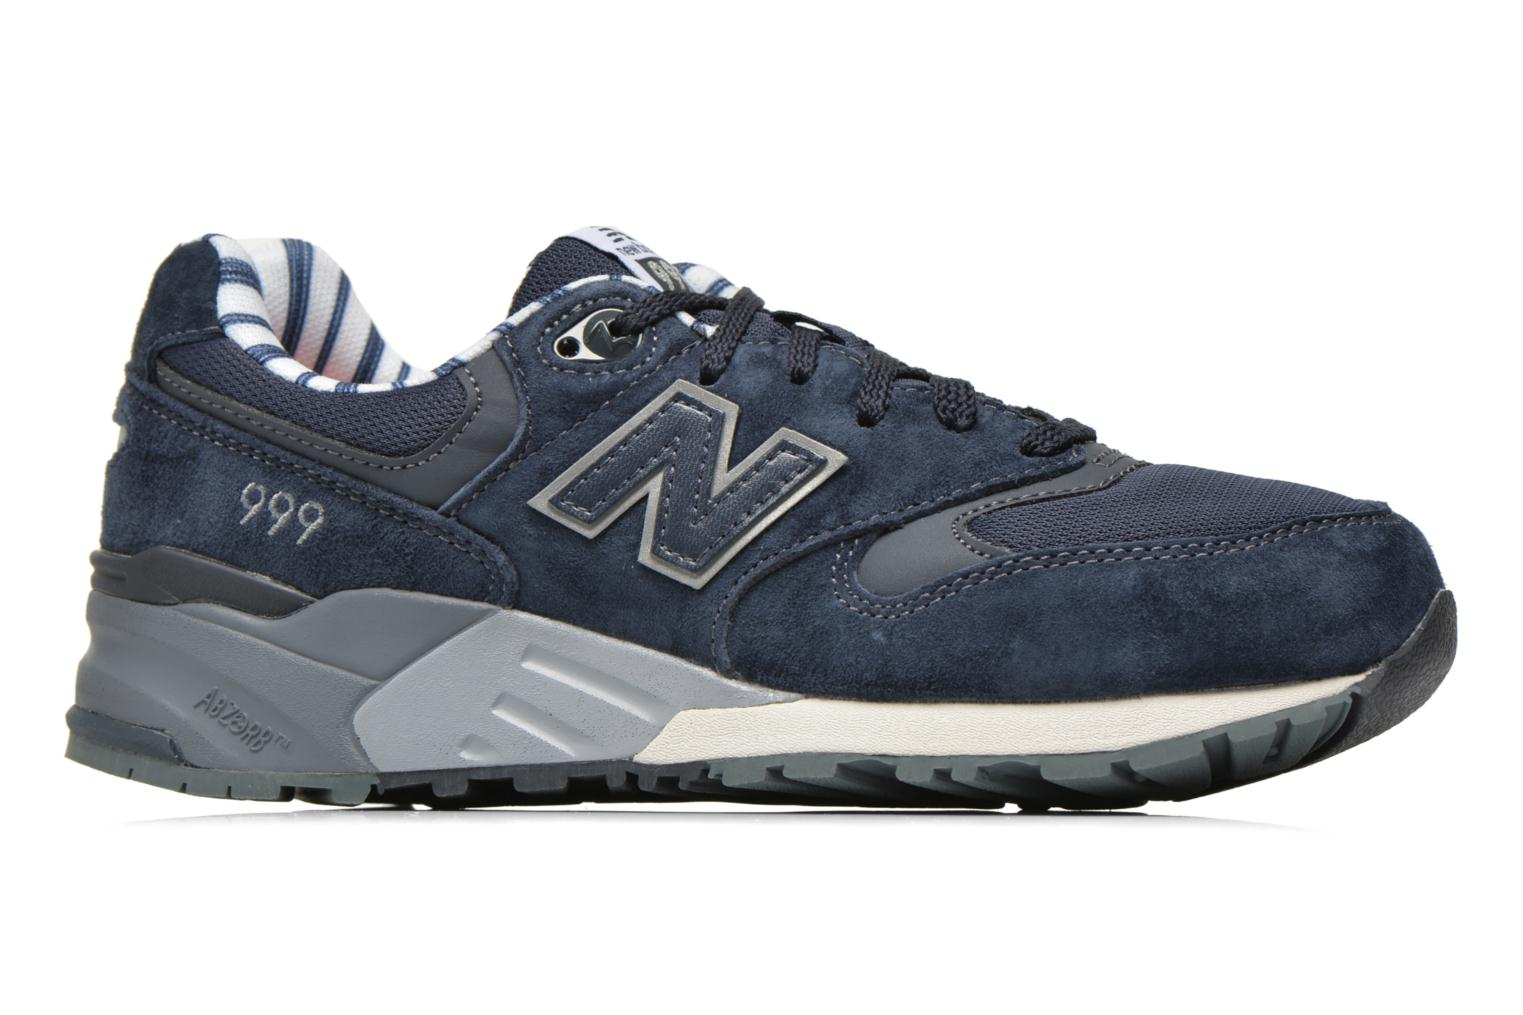 WL999 WF Dark Navy